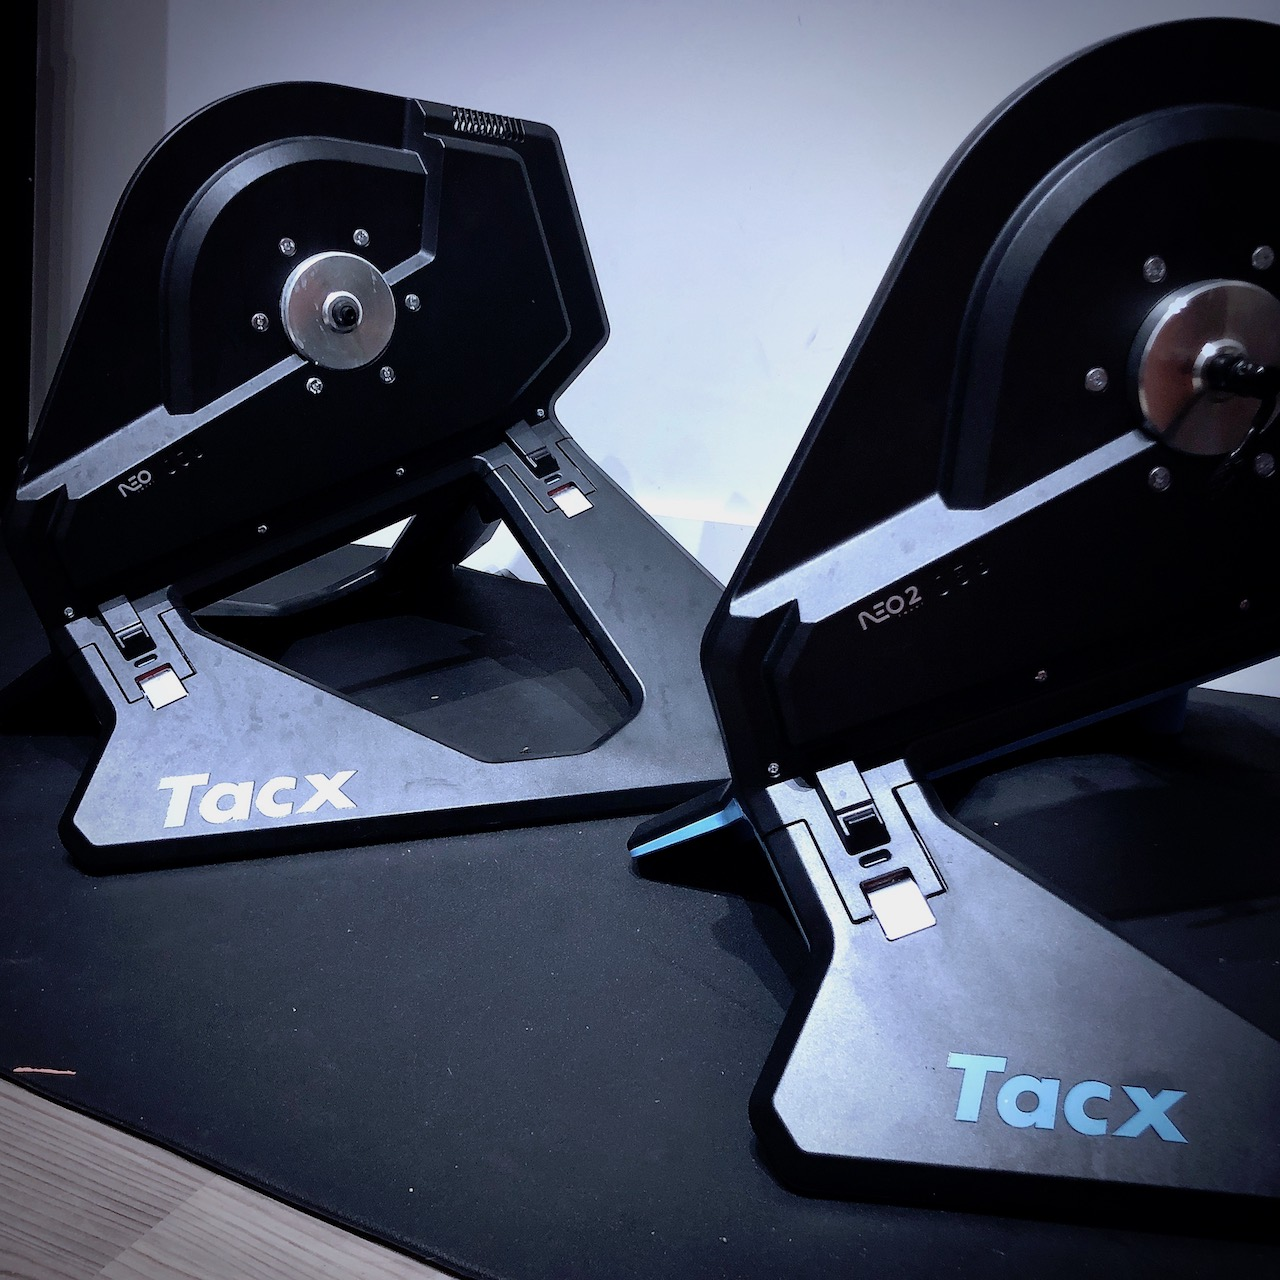 TitaniumGeek IMG 6118 Tacx NEO 2 Review | ZWIFT GEAR TEST Cycling Gear Reviews Smart Trainers Zwift  Zwift tacx neo 2 cycling   Image of IMG 6118